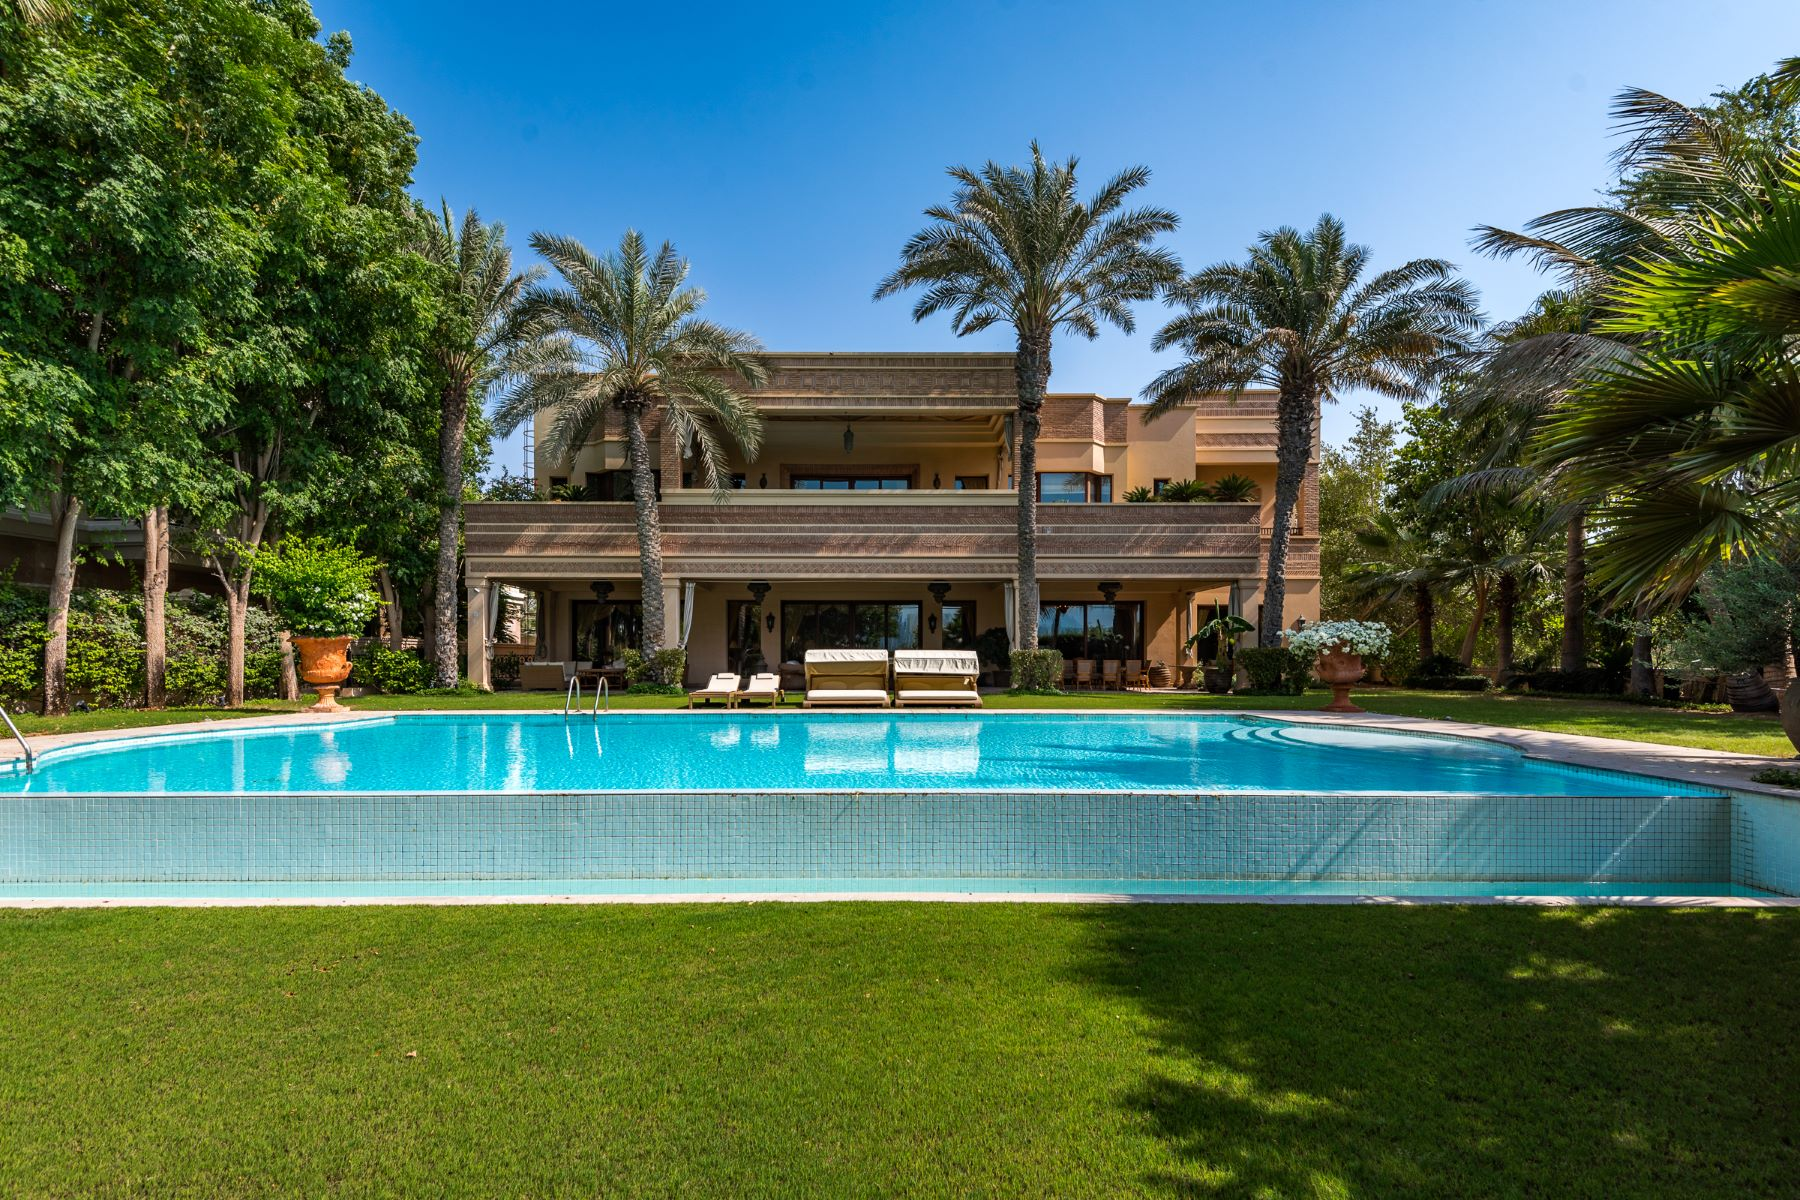 Single Family Home for Sale at Moroccan French Inspired Bespoke Villa Emirates Hills, Dubai, Dubai United Arab Emirates